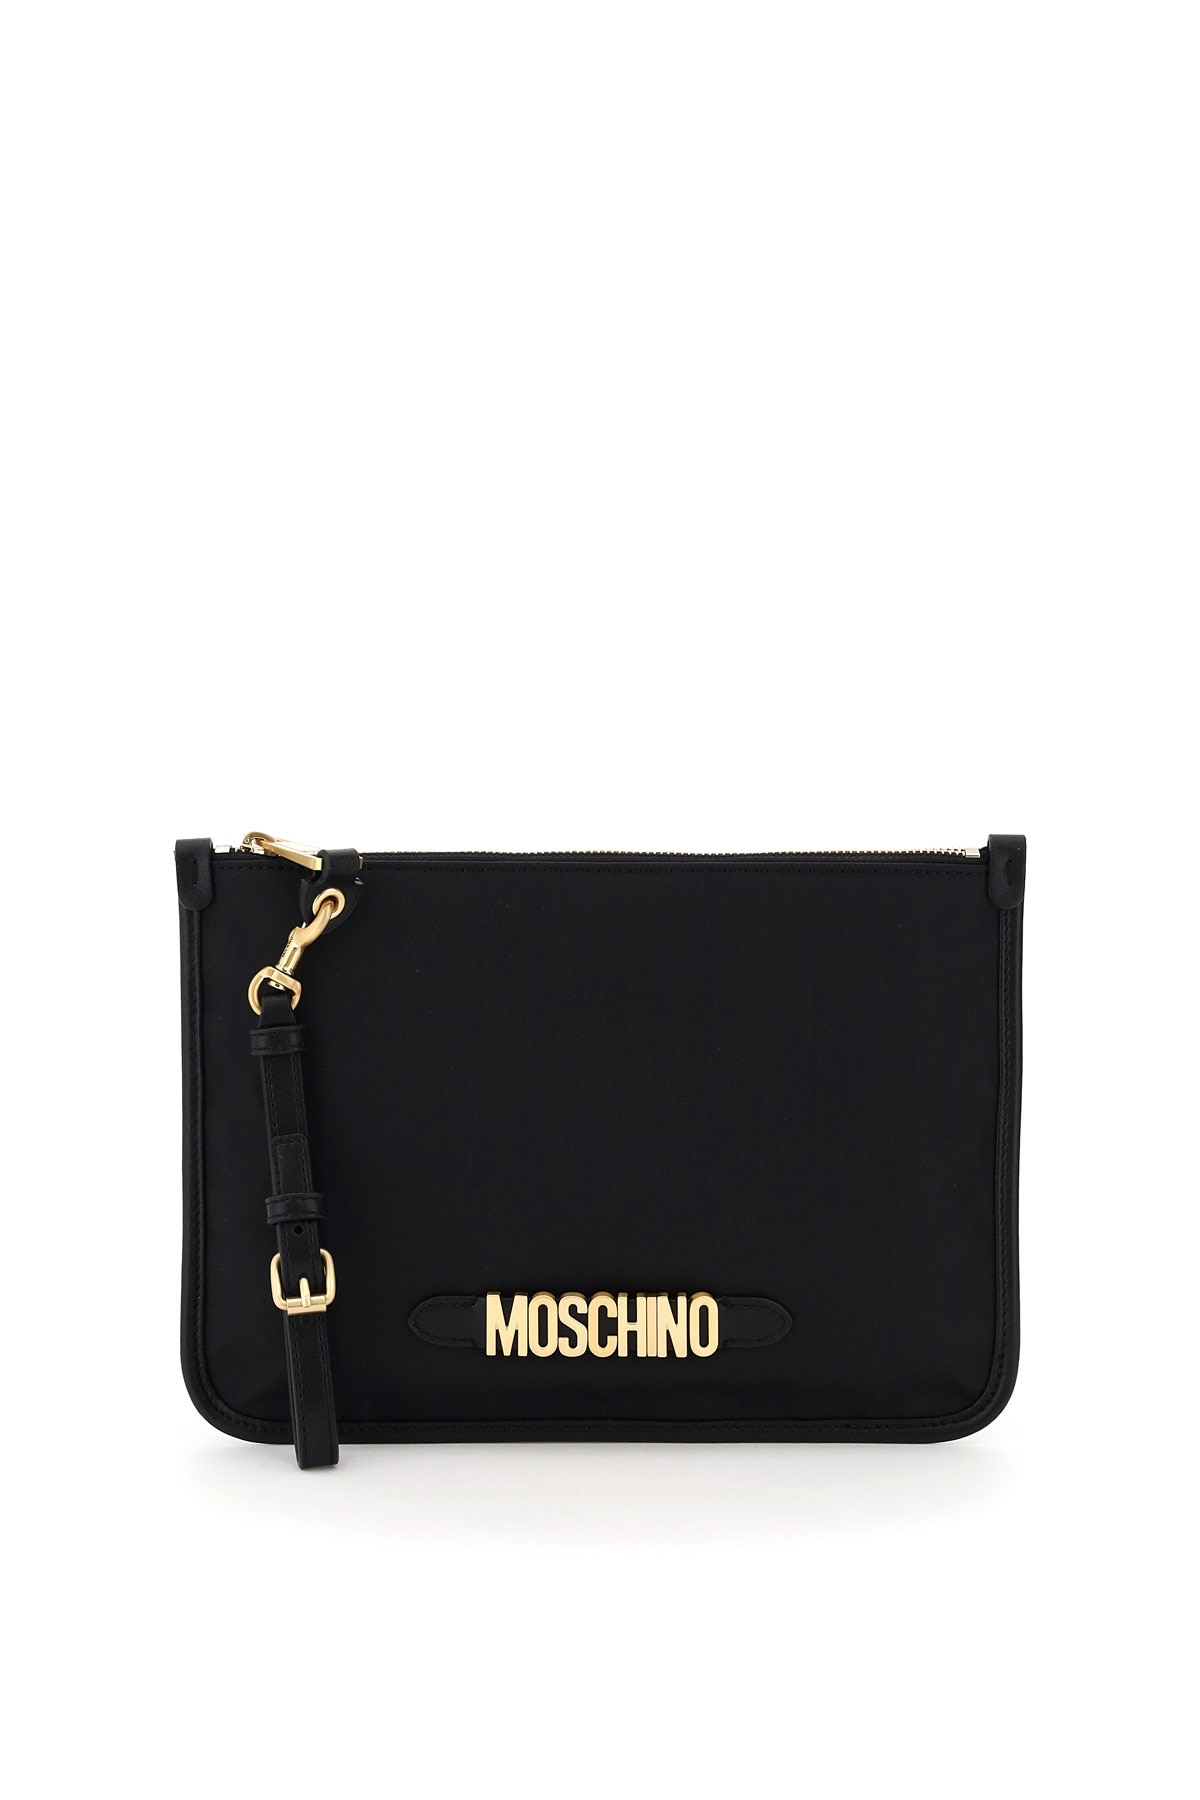 MOSCHINO FABRIC POUCH MOSCHINO LETTERING OS Black Technical, Leather, Cotton